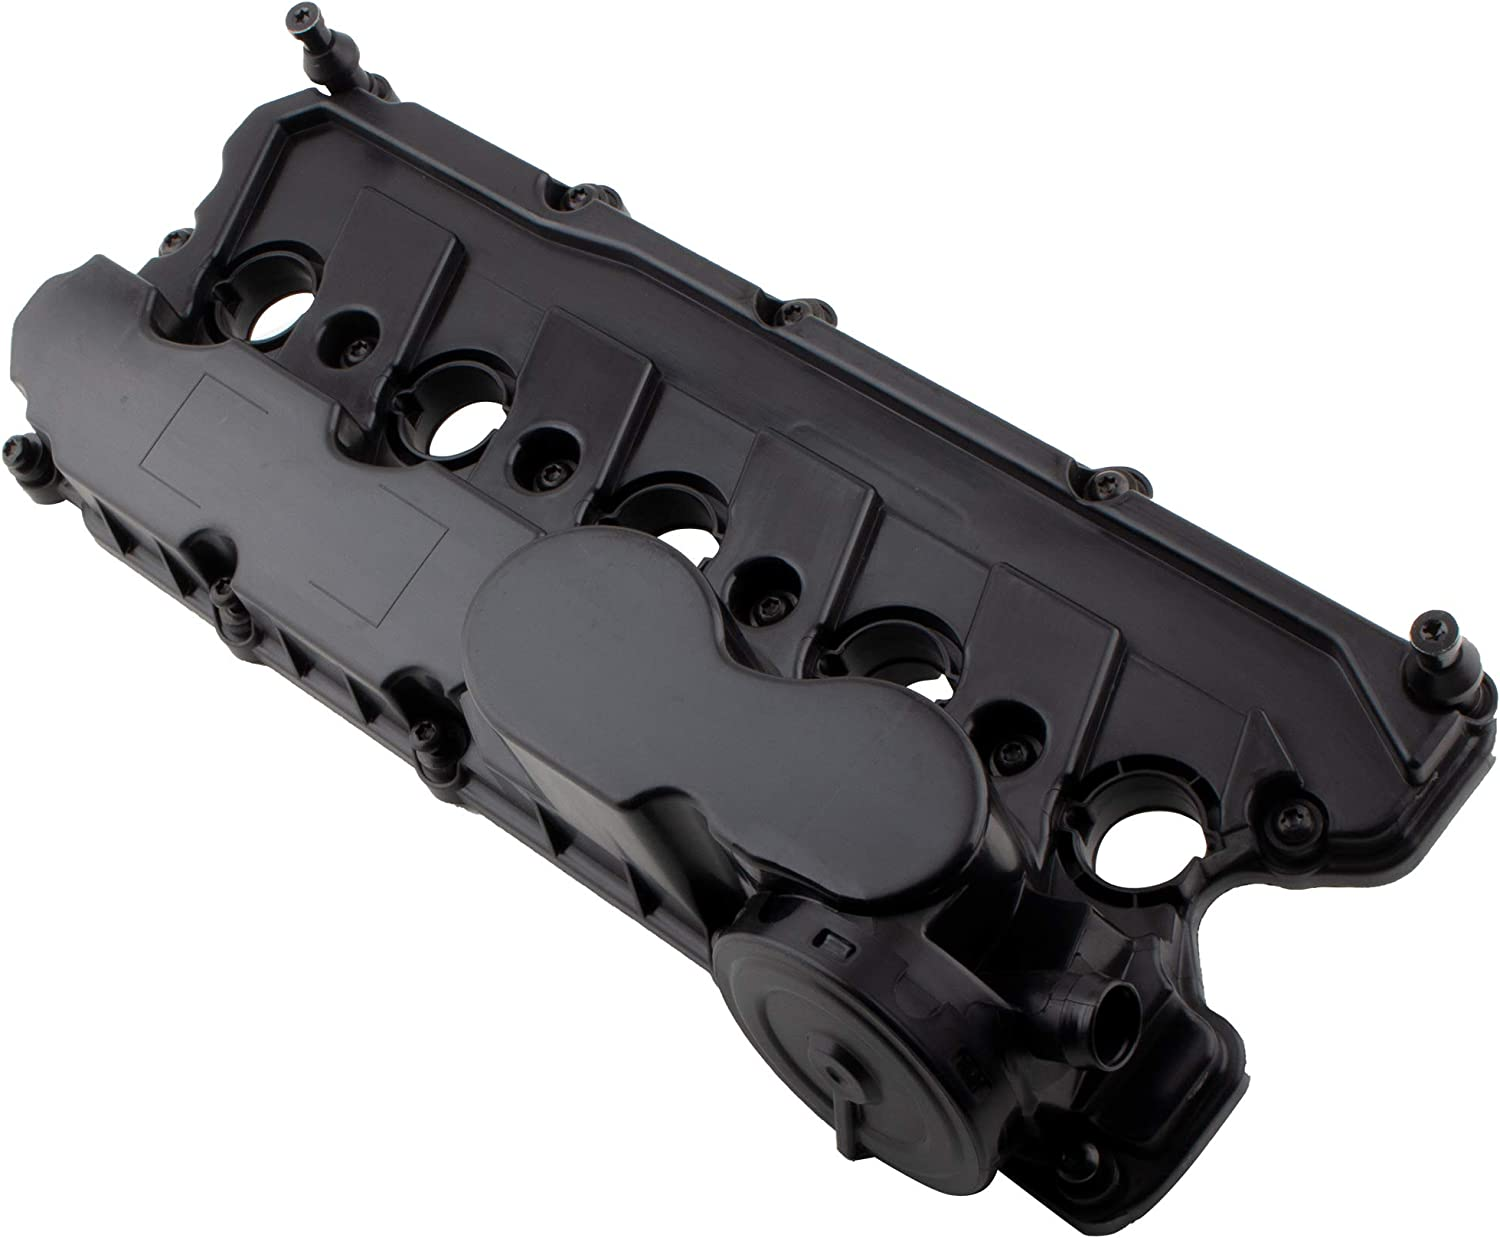 BOXI Valve Cover with Gasket and Bolts for Volkswagen 2005-2014 Jetta / 2012-2014 Beetle / 2010-2014 Golf / 2006-2009 Rabbit / 2012-2014 Passat (ONLY for 2.5L L5 Engine) 07K103469L 07K103469F